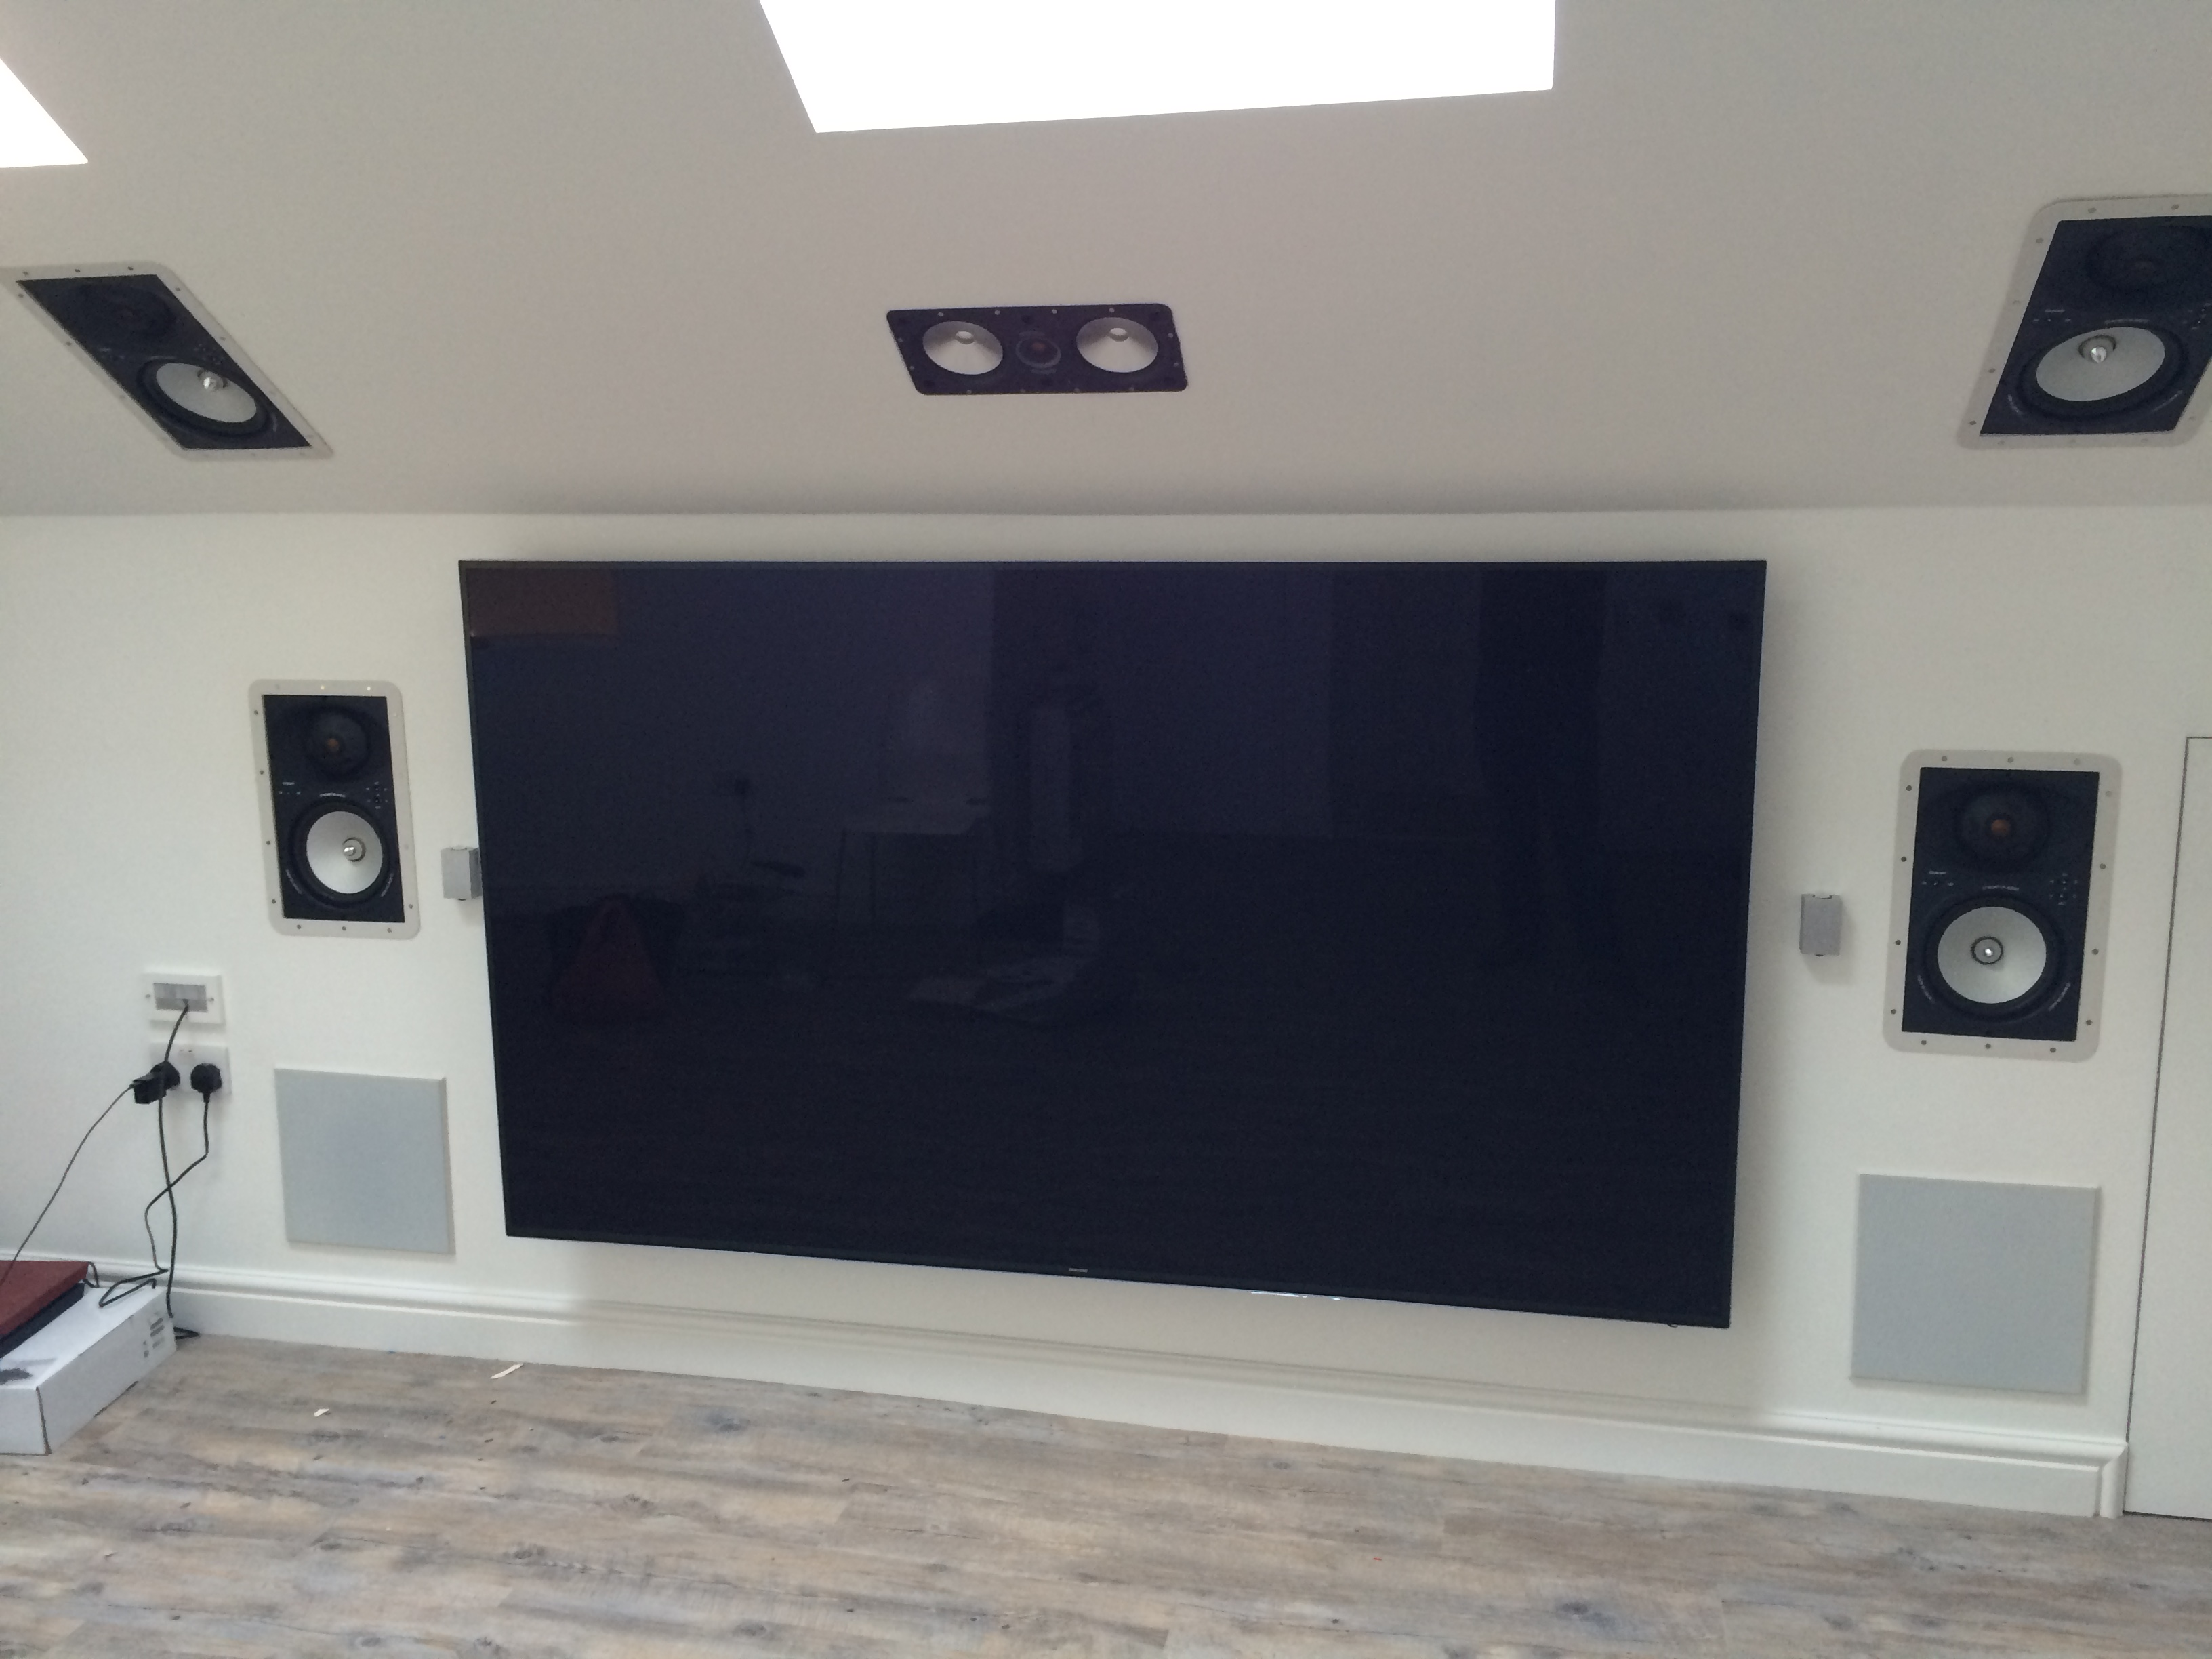 Home Cinema Systems Installers Knutsford